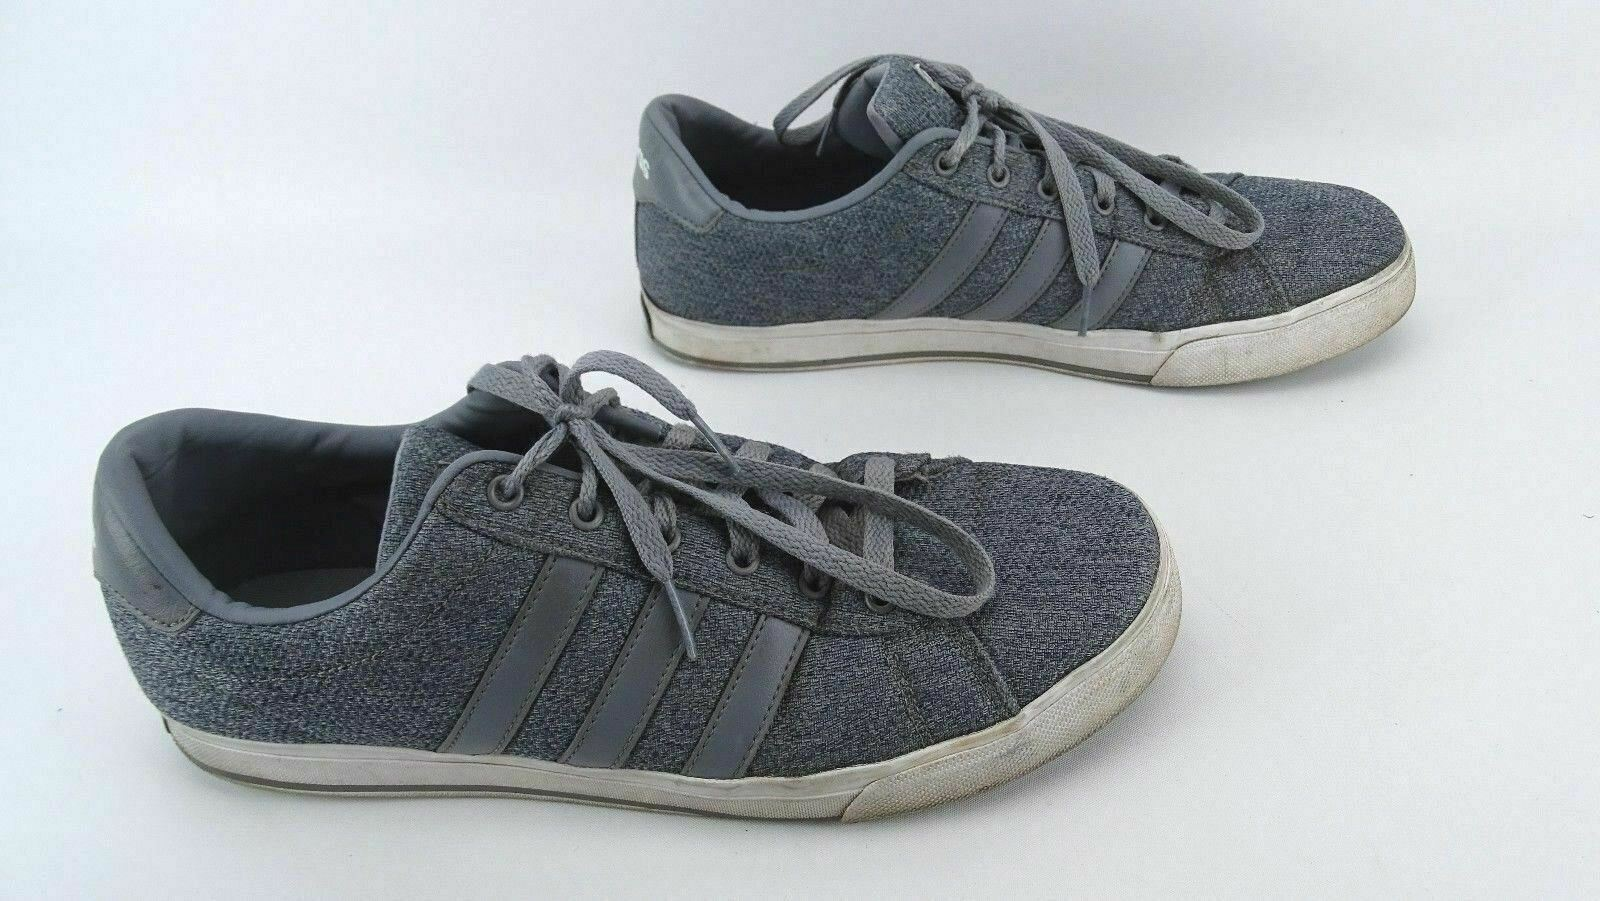 Adidas Neo Sneakers AW4568 Size 11 Grey Shoes